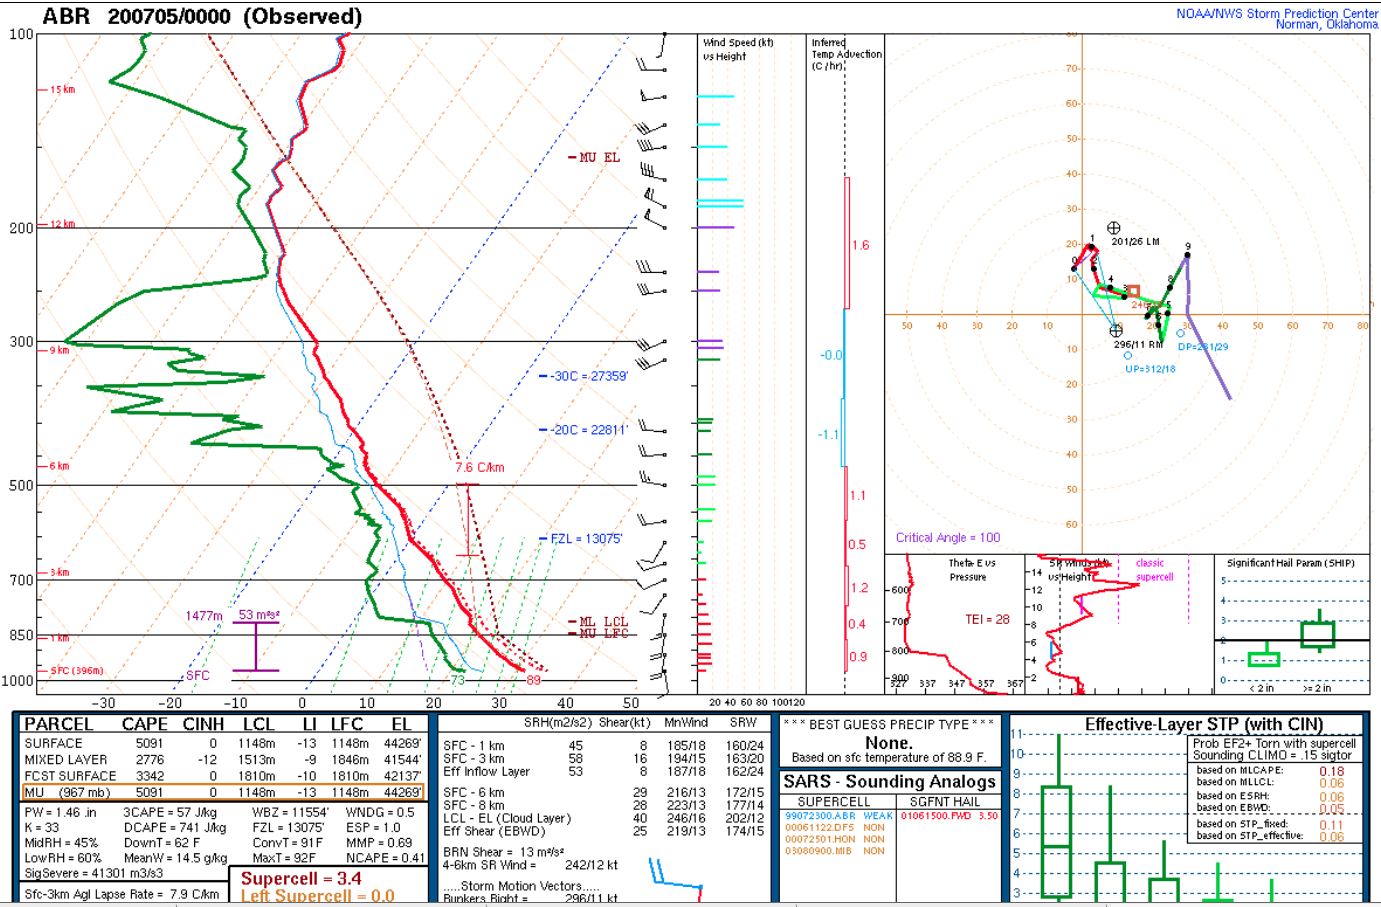 Plot of 00 UTC rawinsonde data from Aberdeen, South Dakota [click to enlarge]